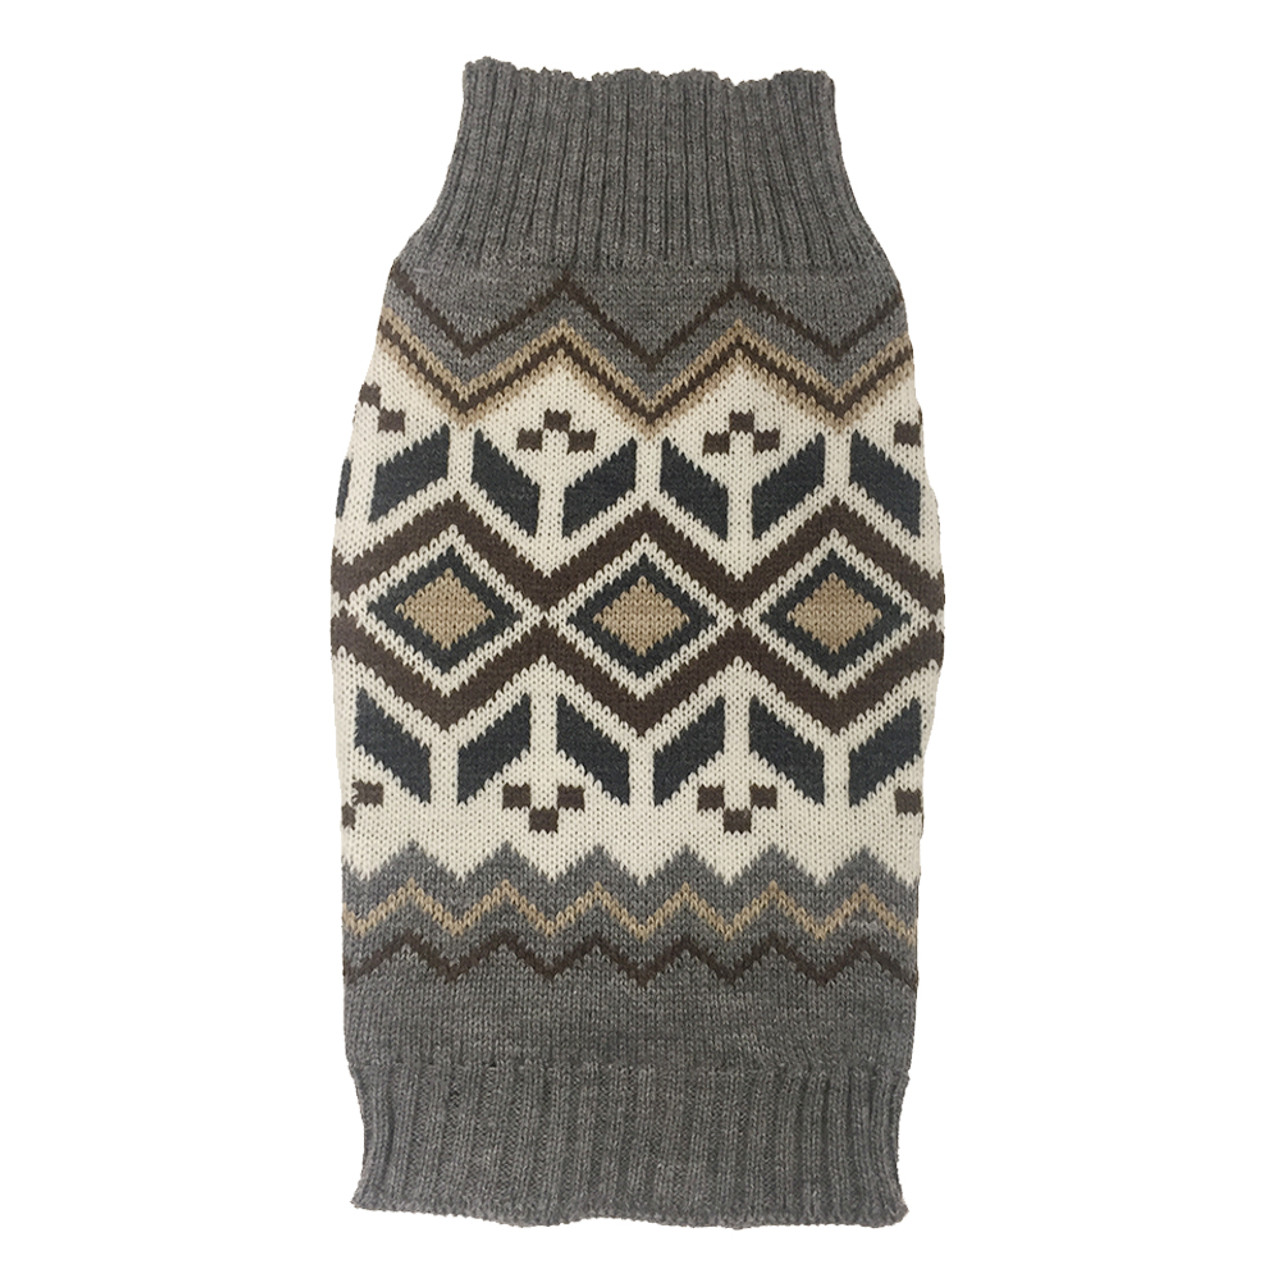 SimplyDog Heather Gray Fair Isle Dog Sweater